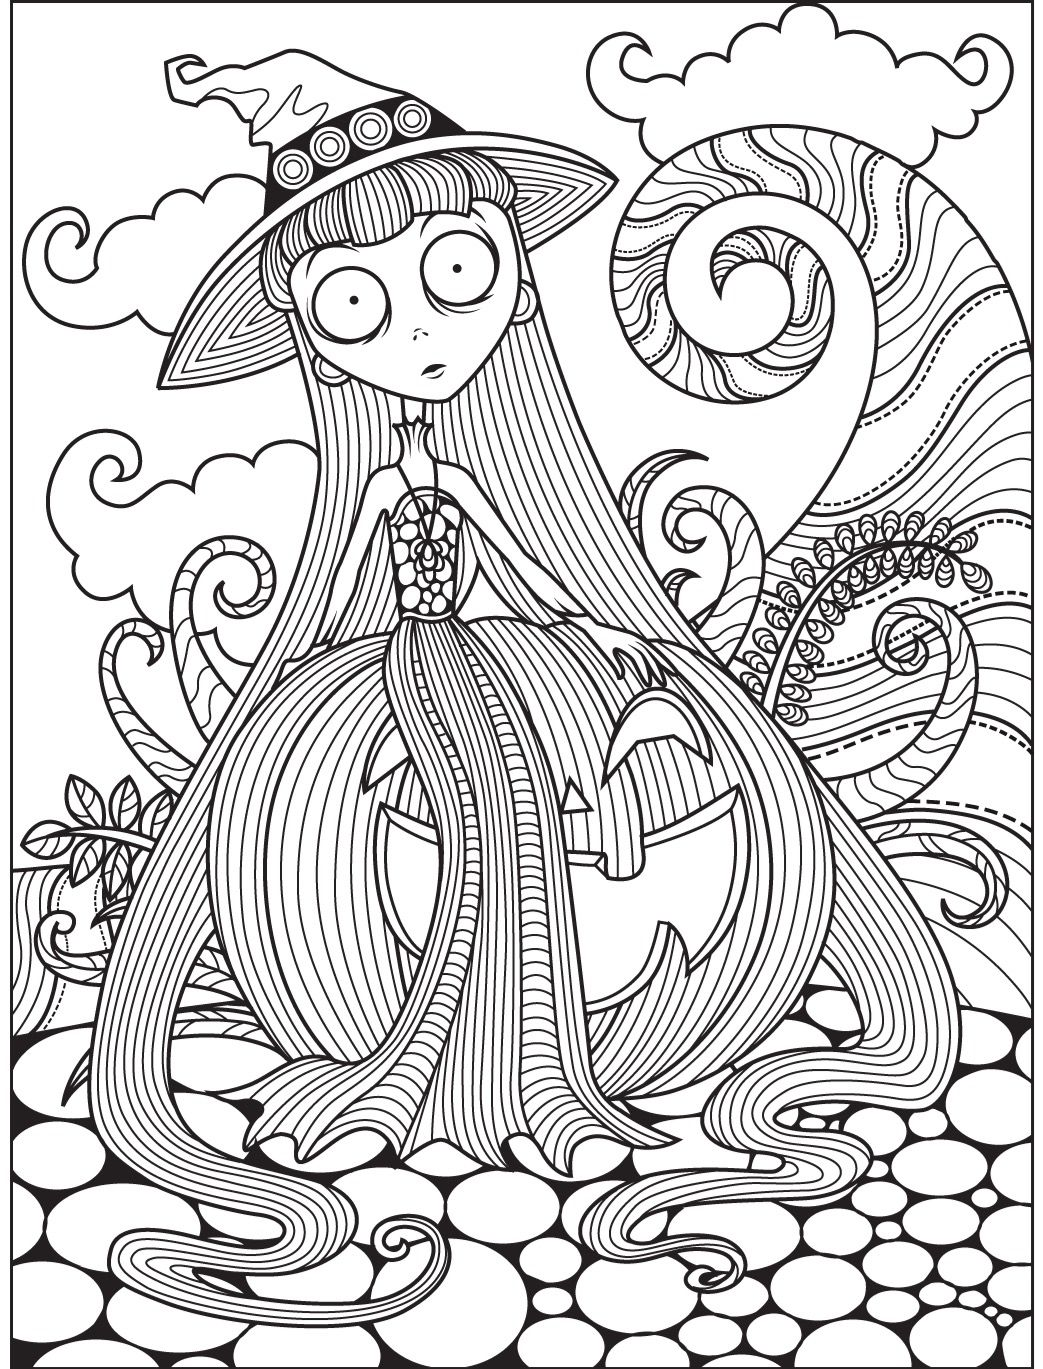 Halloween coloring page Colorish free coloring app for